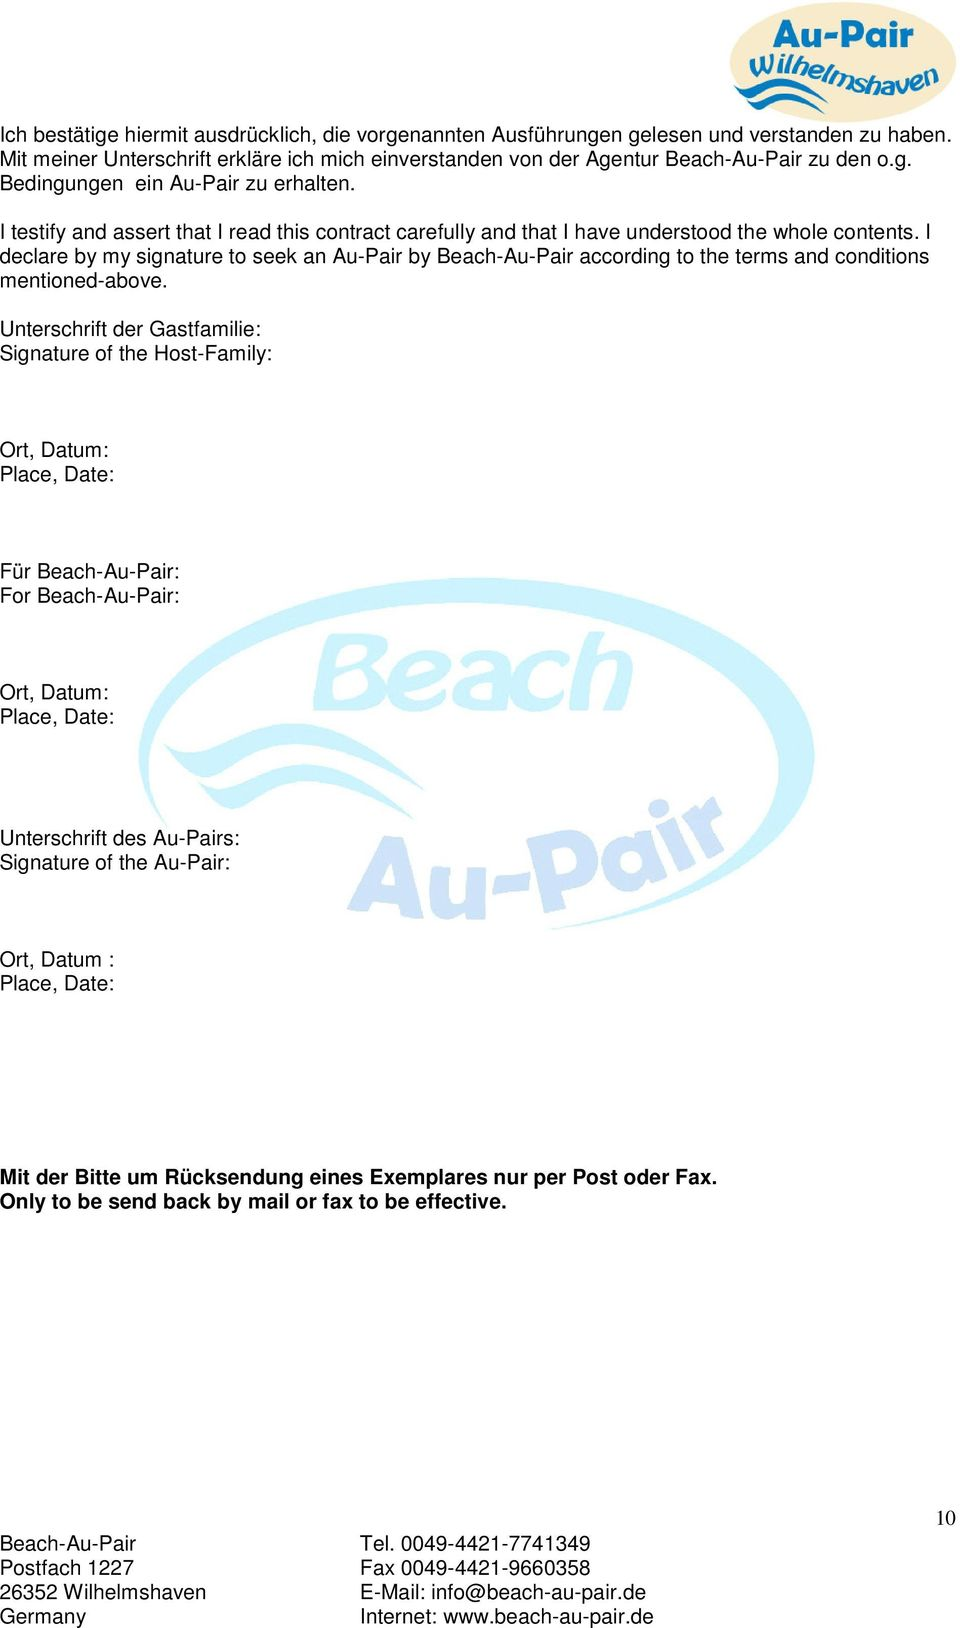 I declare by my signature to seek an Au-Pair by Beach-Au-Pair according to the terms and conditions mentioned-above.